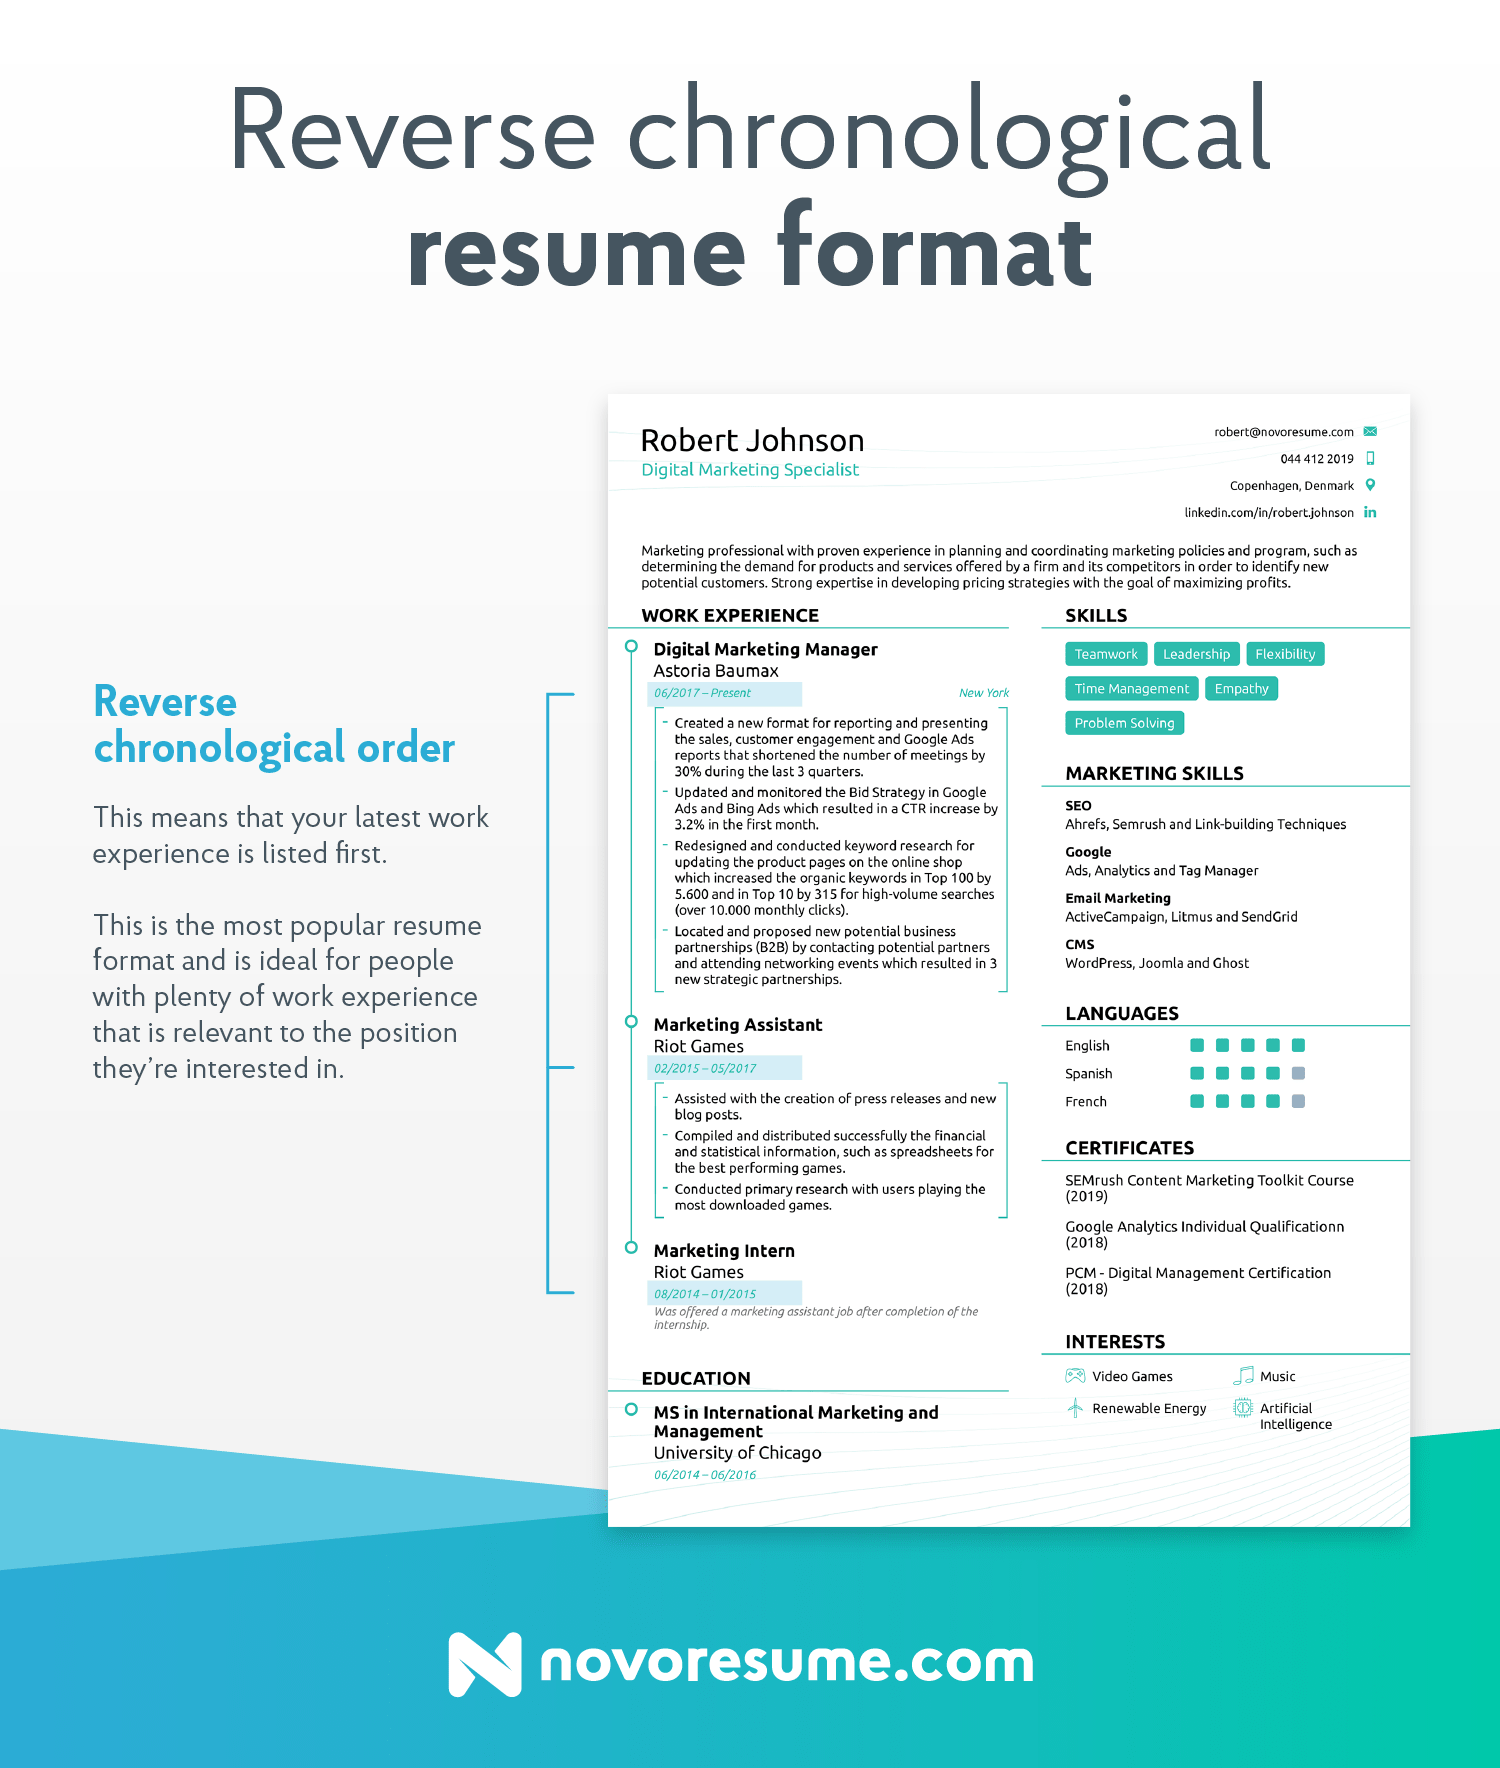 reverse chronological format software engineer